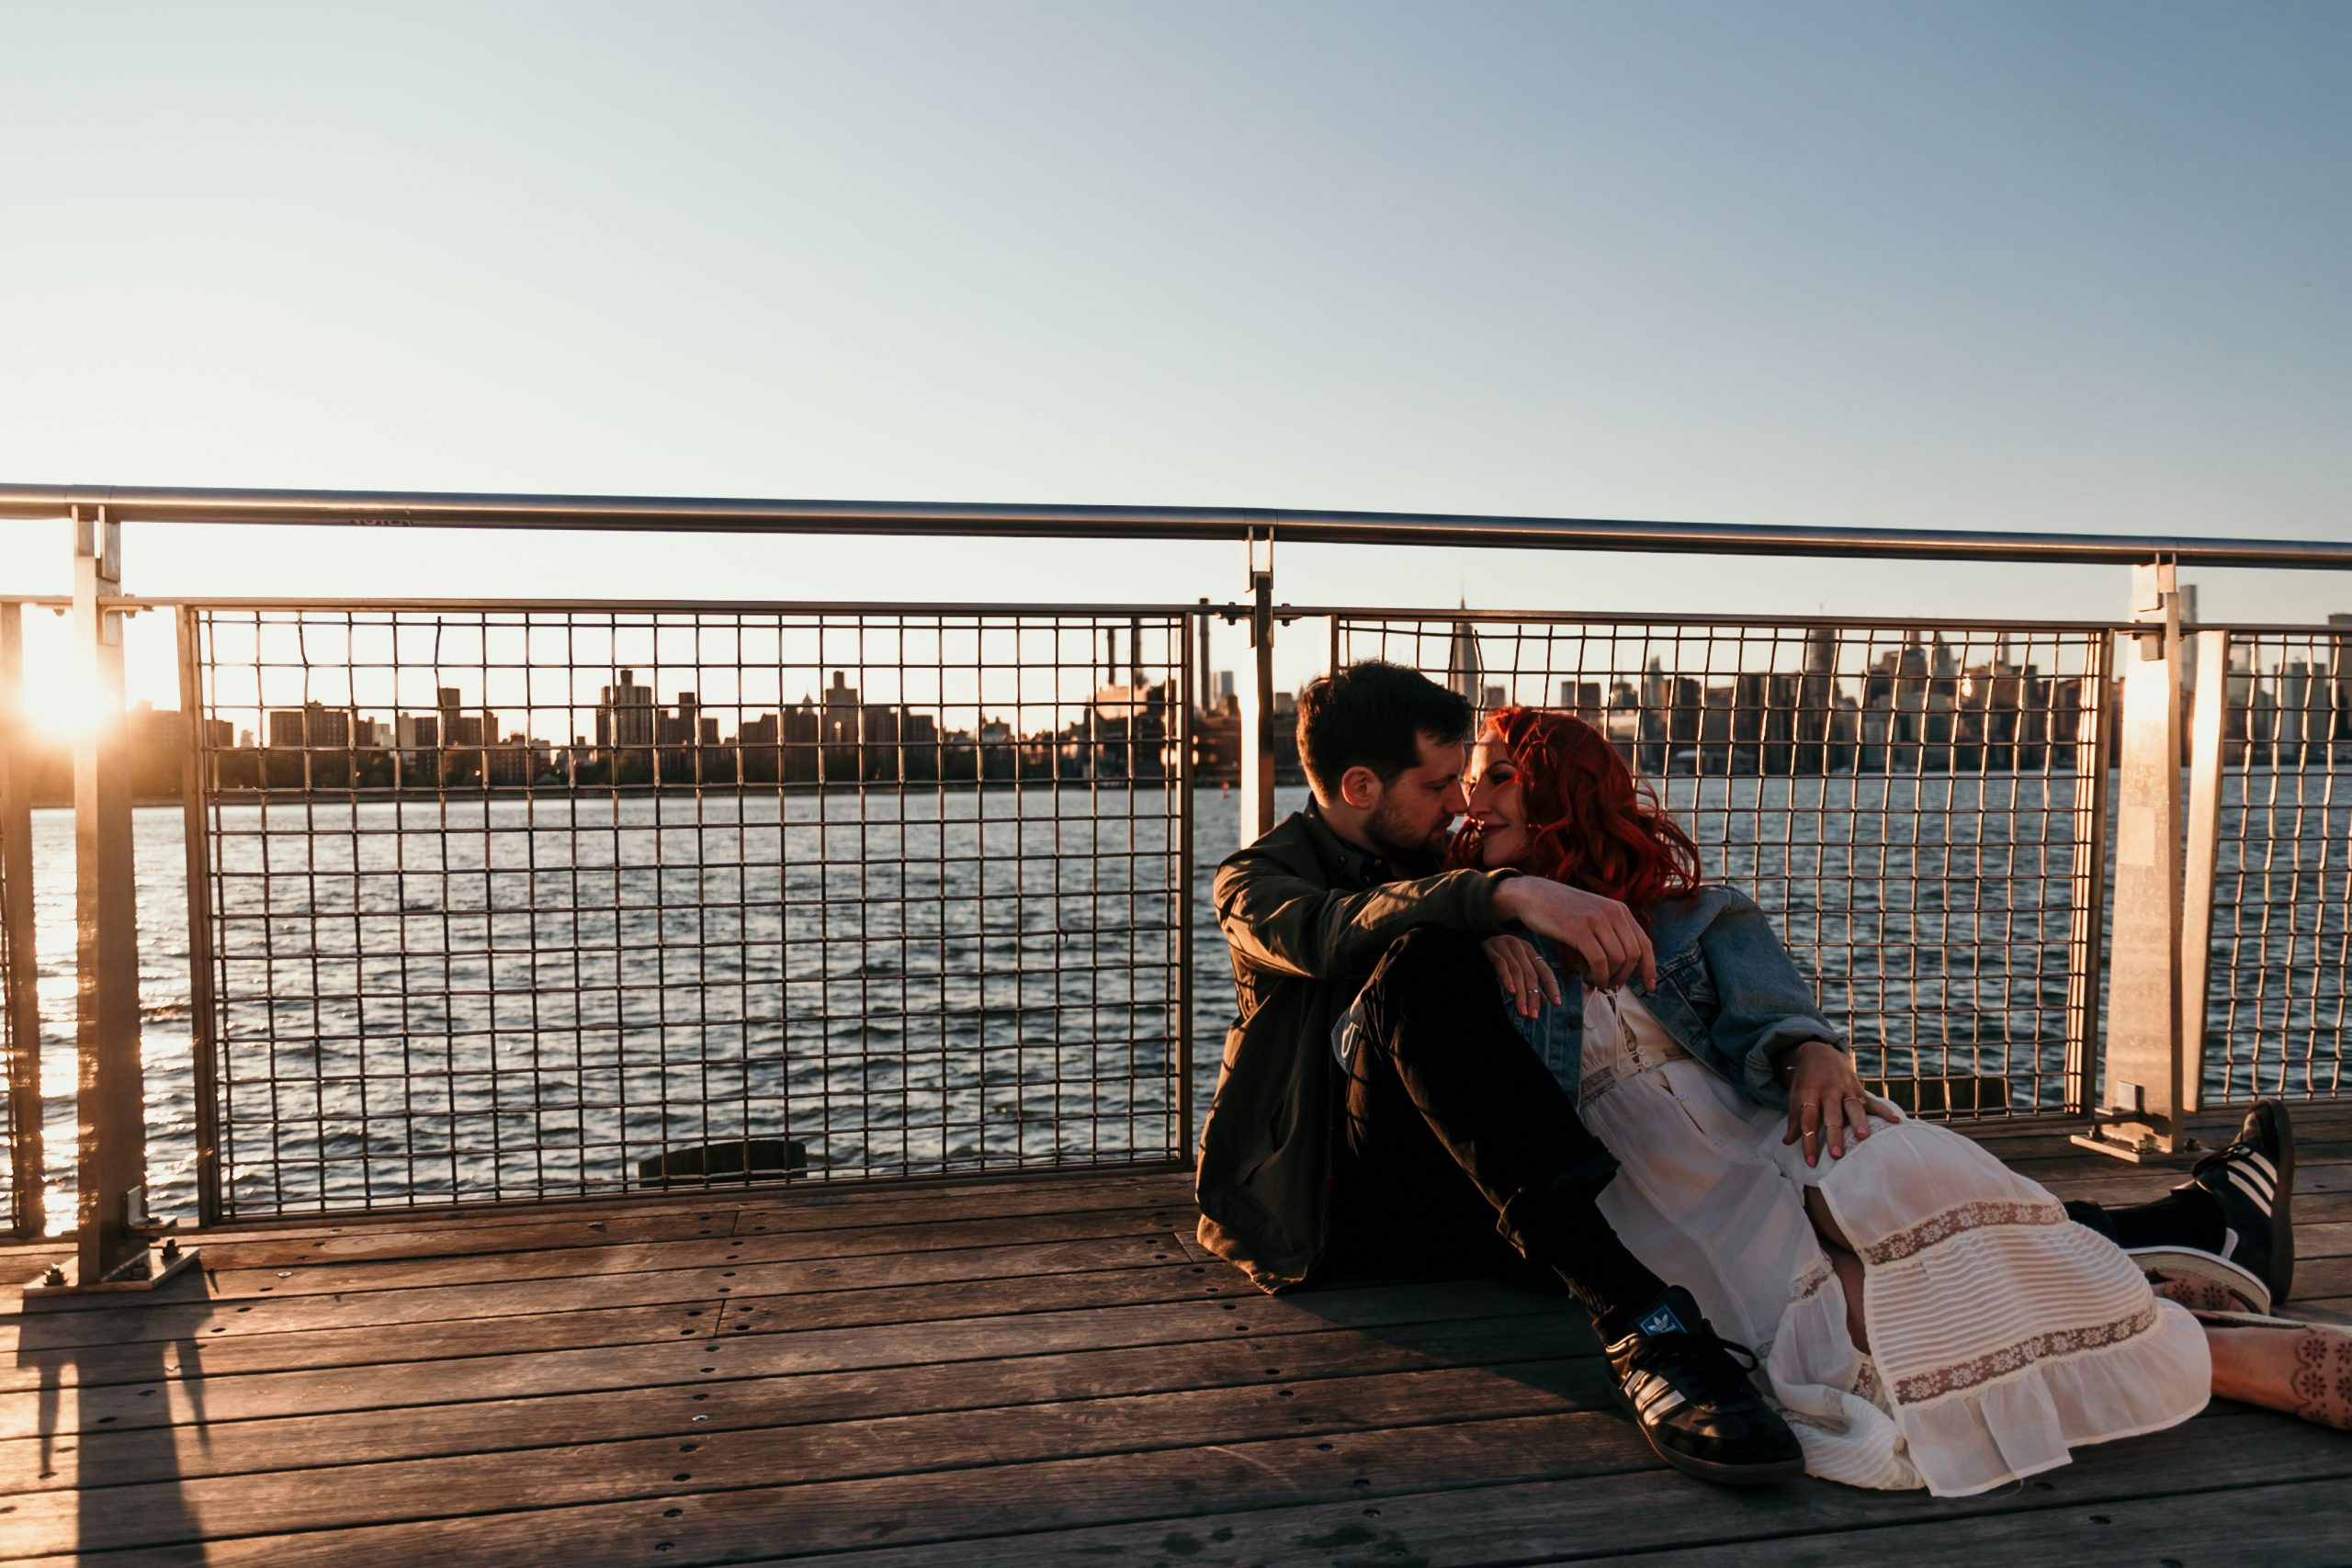 williamsburg-brooklyn-pier-suessmoments